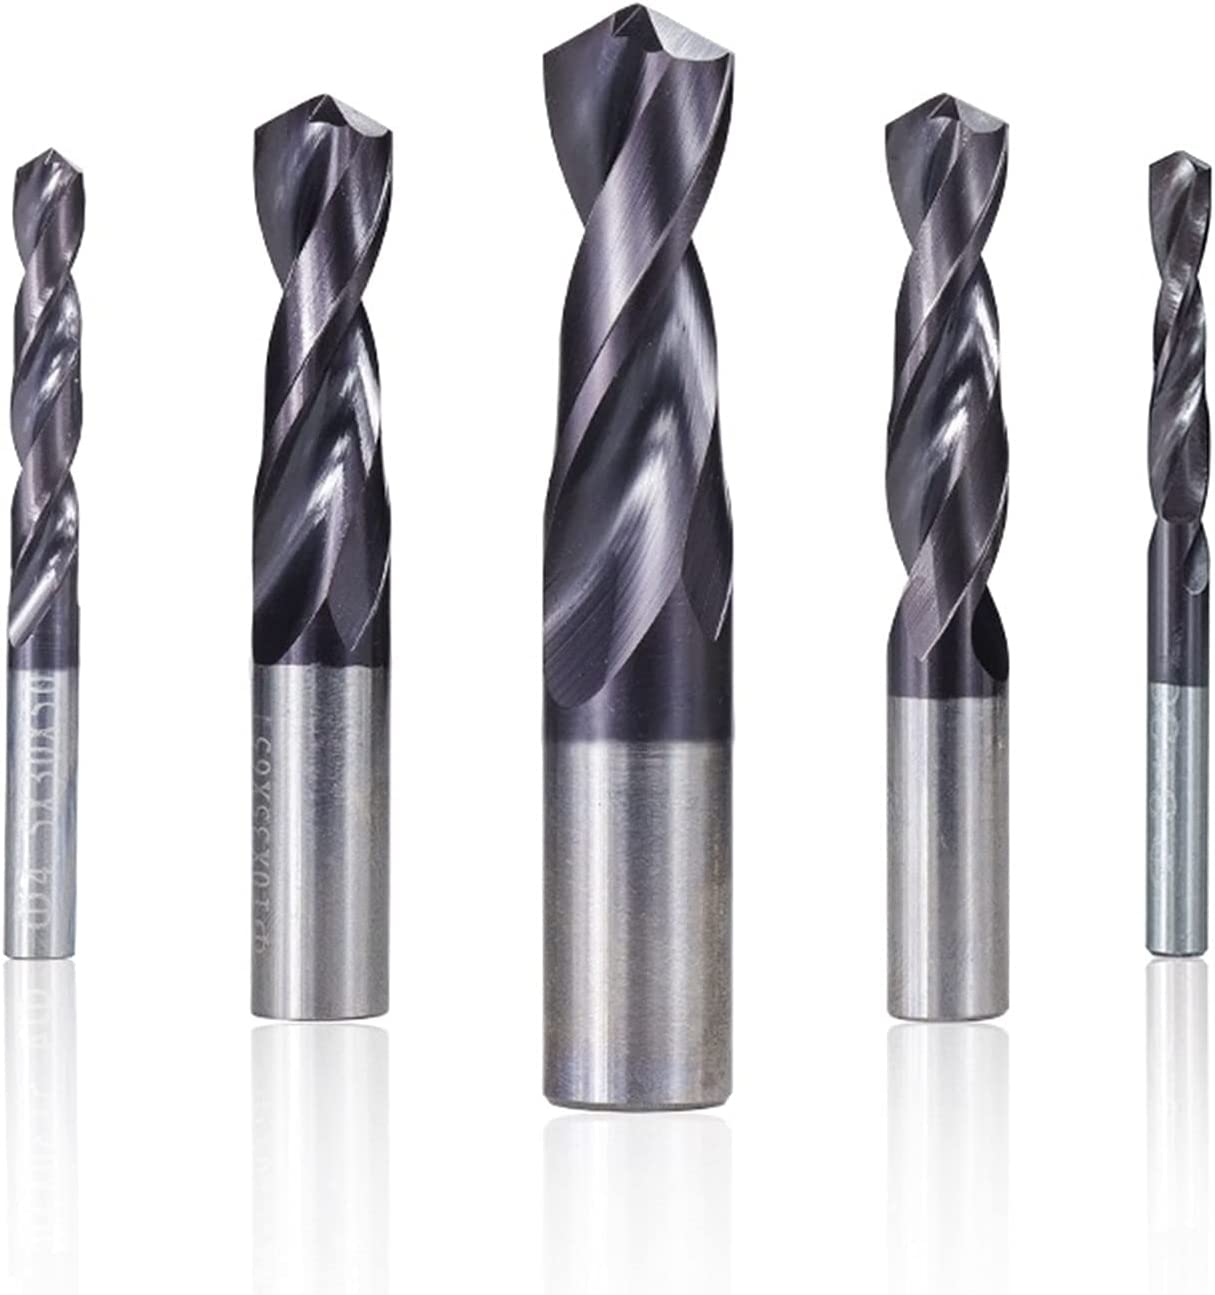 Carbide Drill Bit Super special Deluxe price 1.0-12mm VAPO Gun Coated for CNC Lat